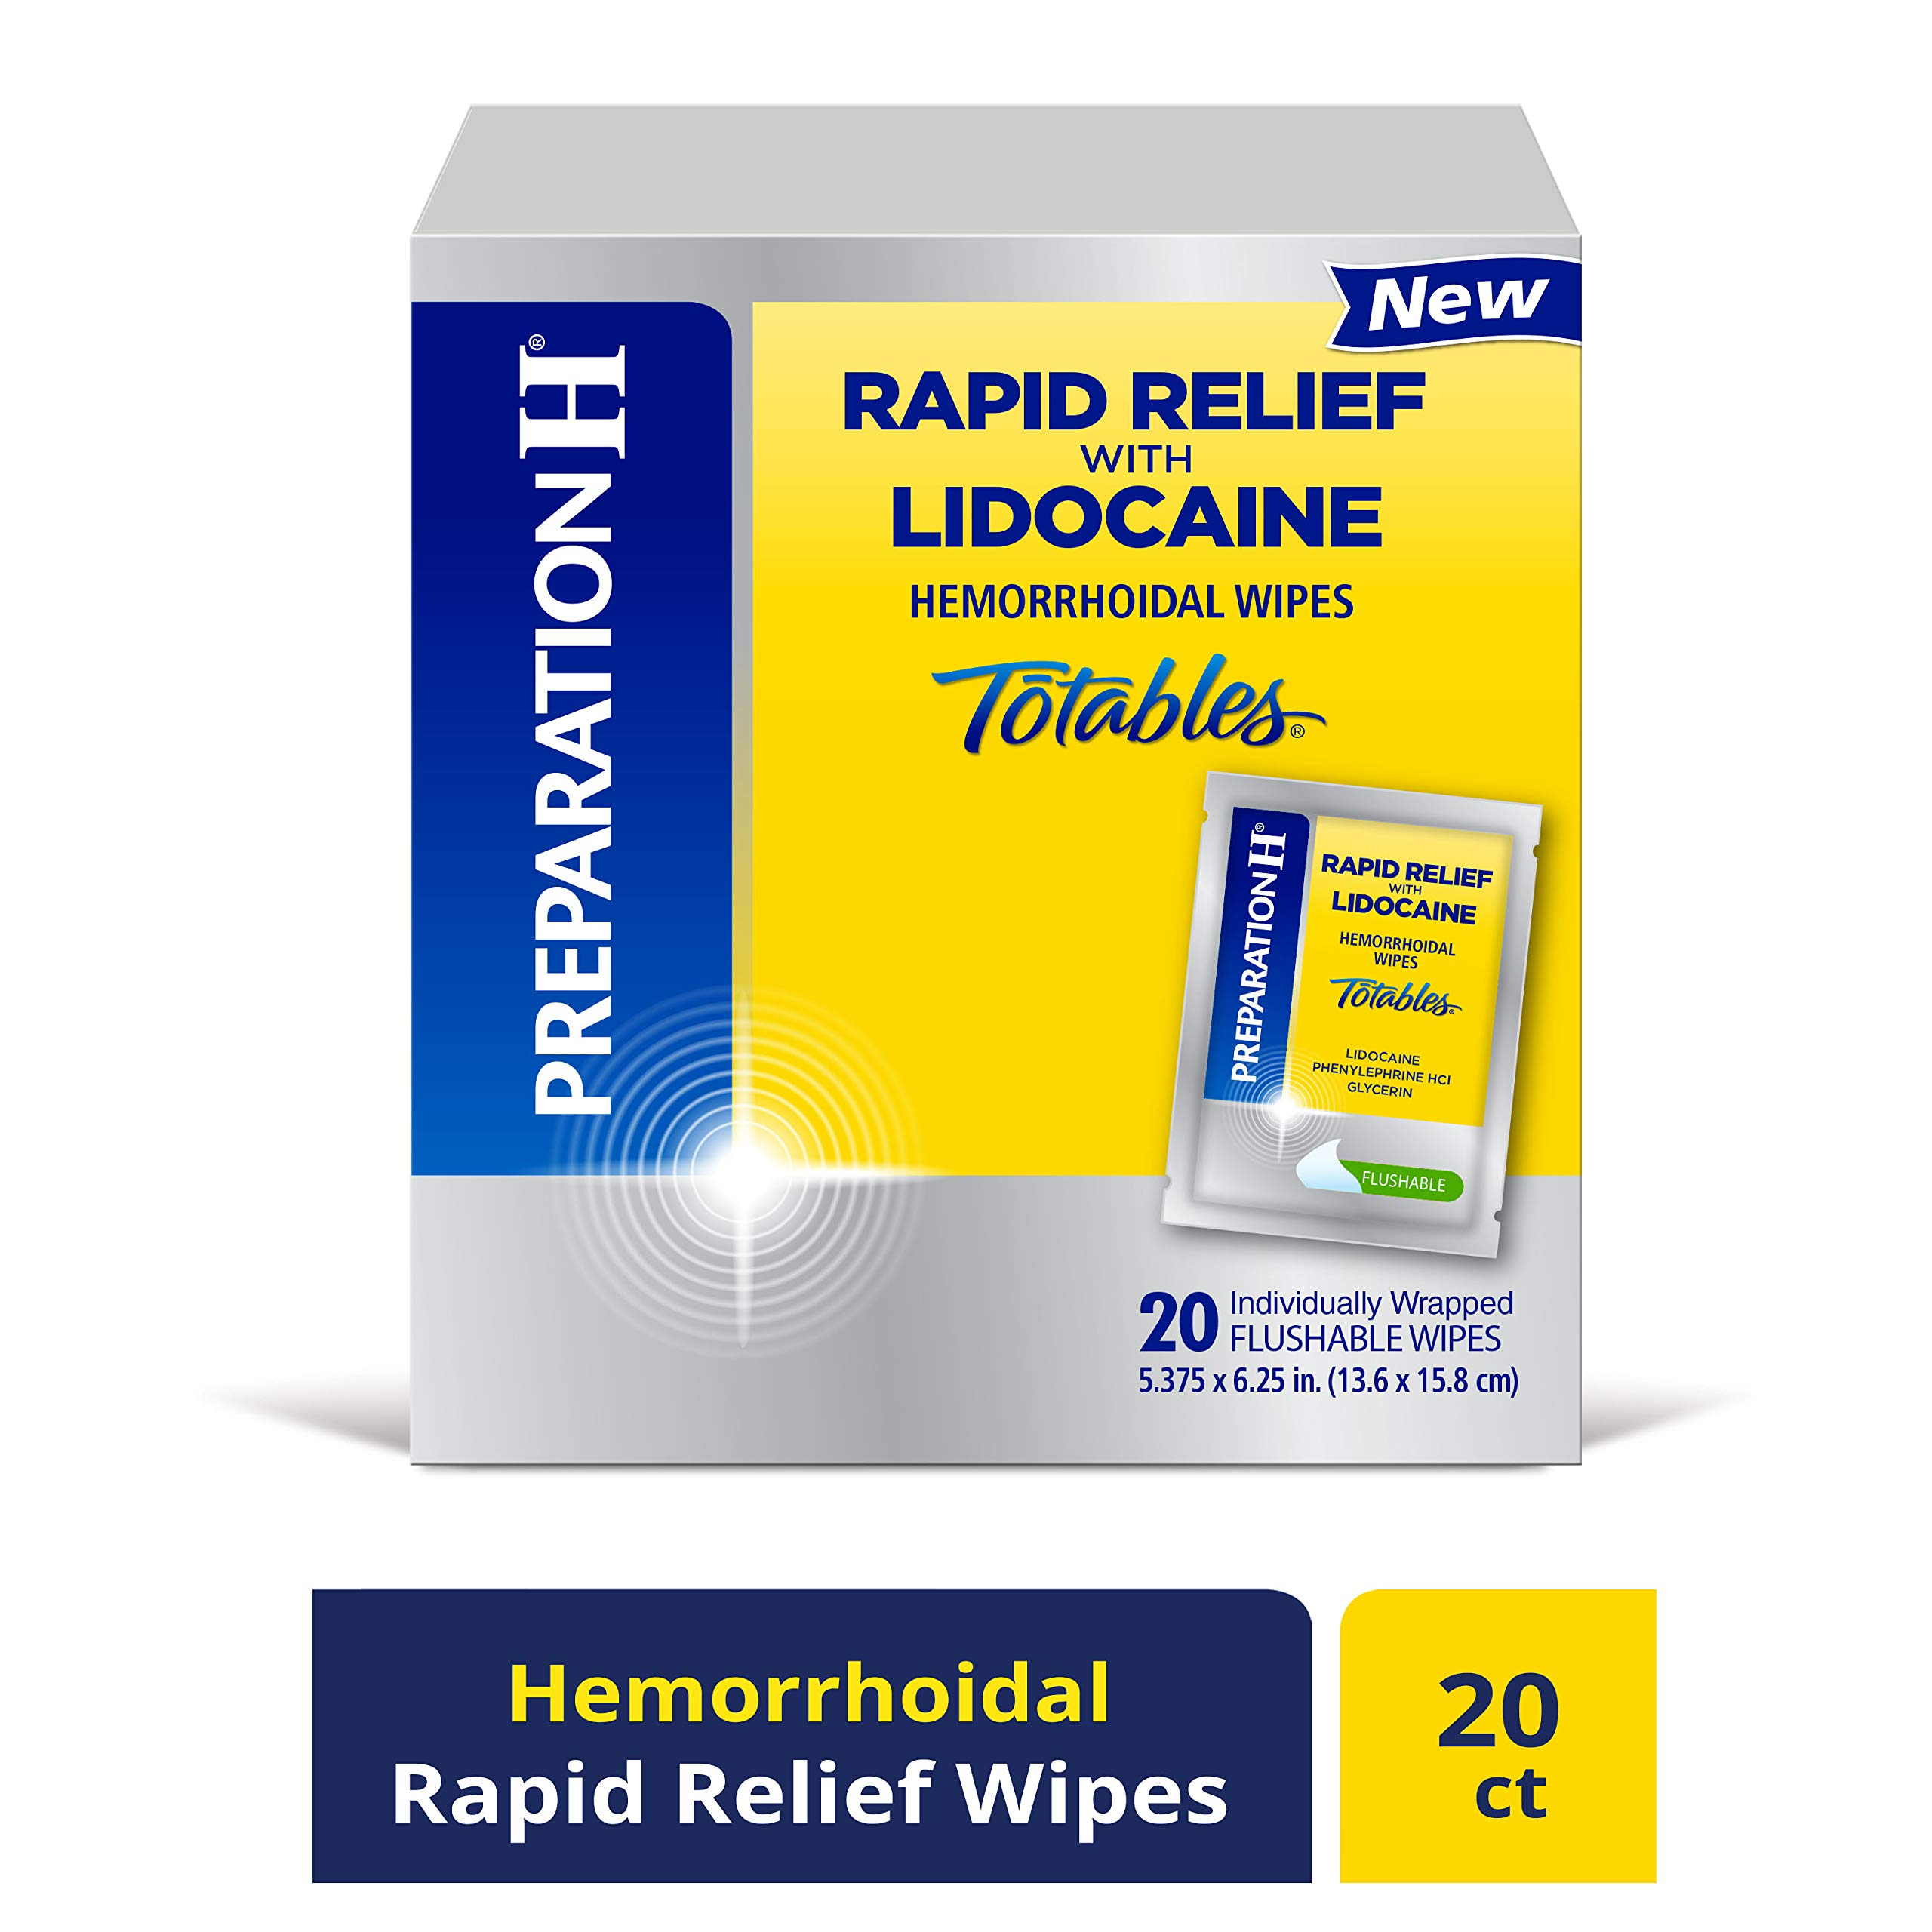 PREPARATION H Rapid Relief with Lidocaine Hemorrhoid Symptom Treatment Flushable Wipes, Numbing Relief for Pain, Burning & Itching, Reduces Swelling, 20 Count by Preparation H